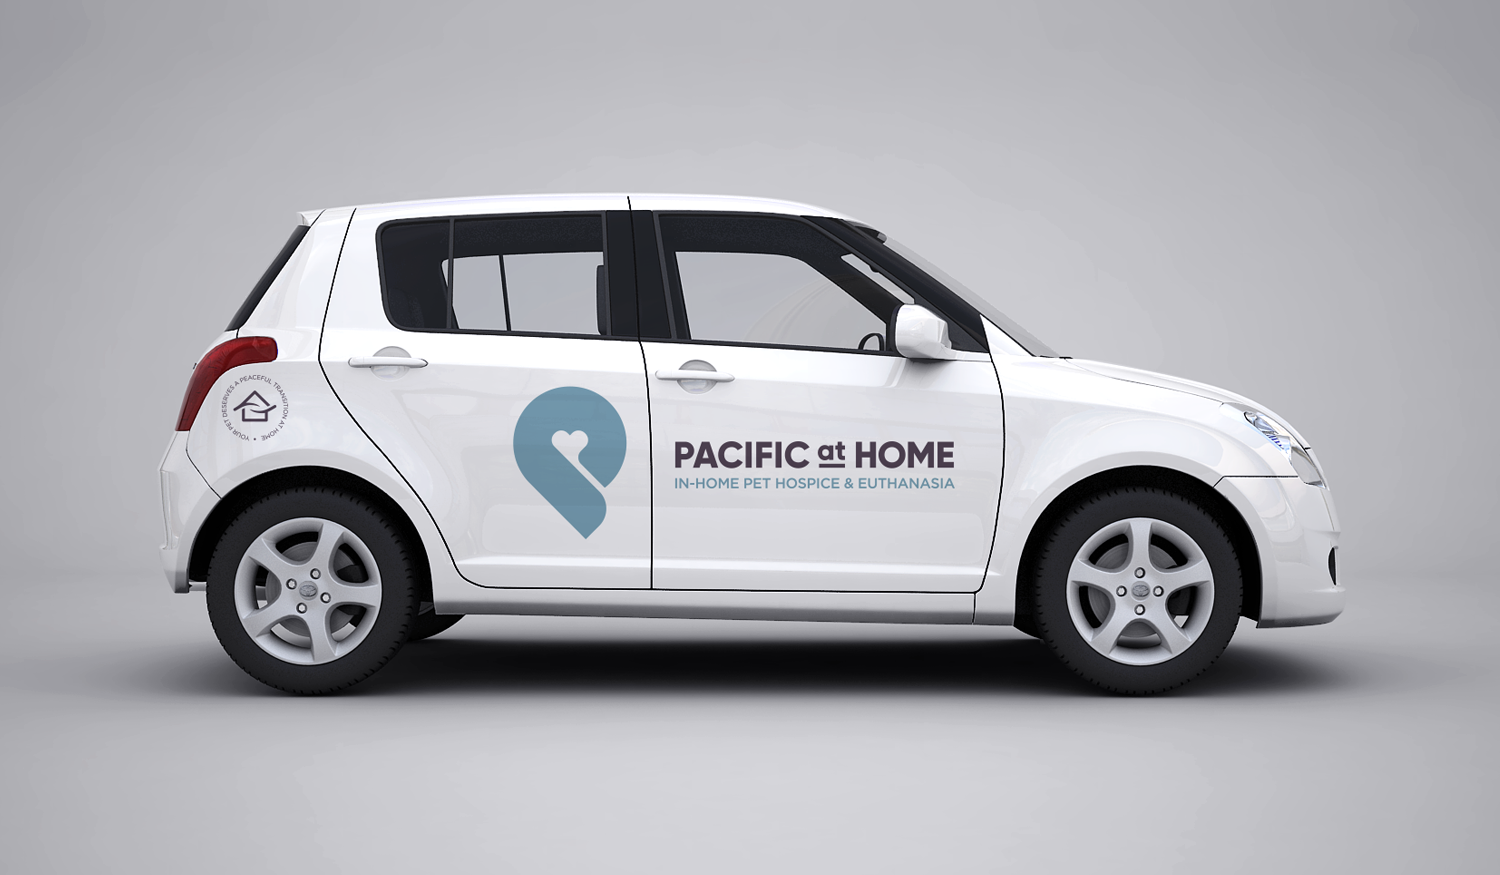 Pacific at Home visual identity vehicle wrap